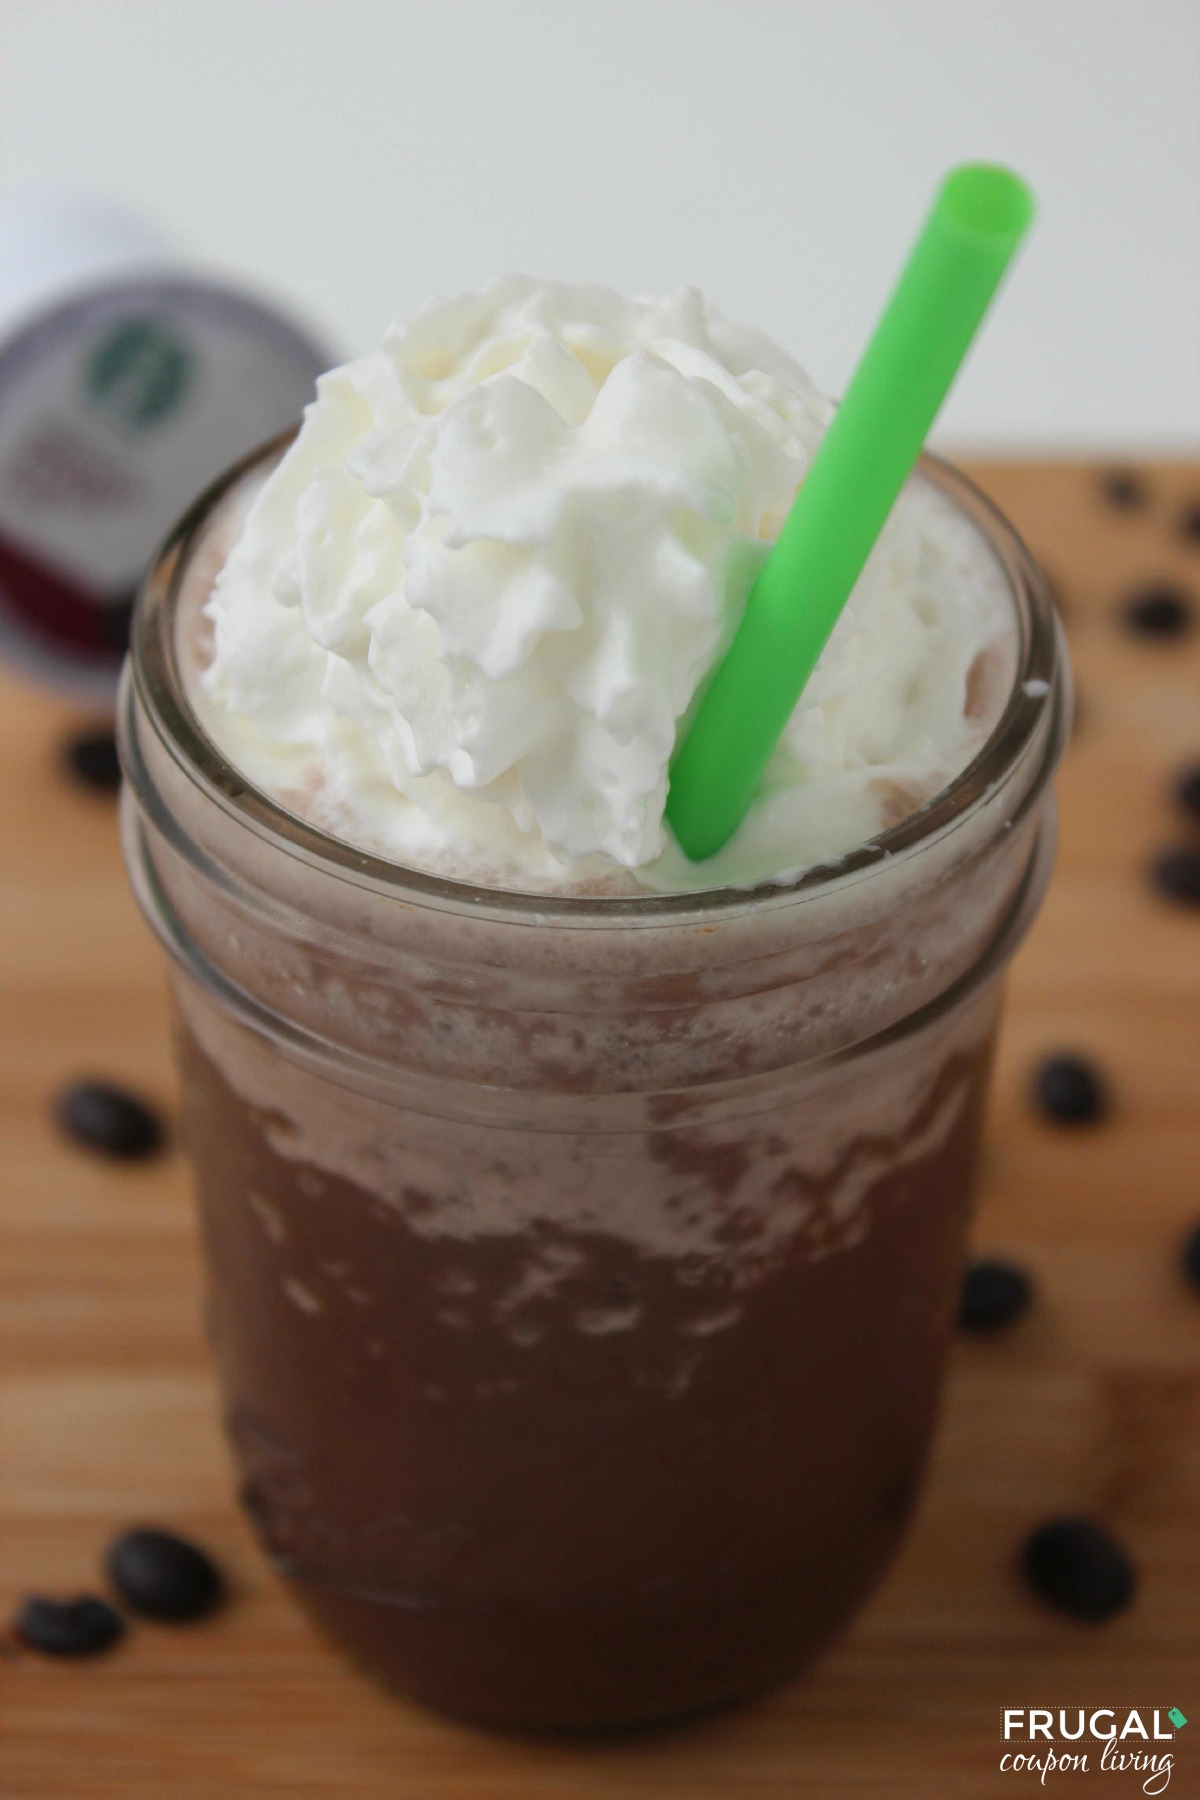 Copycat-Starbucks-Mocha-Frappuccino-frugal-coupon-living-smaller